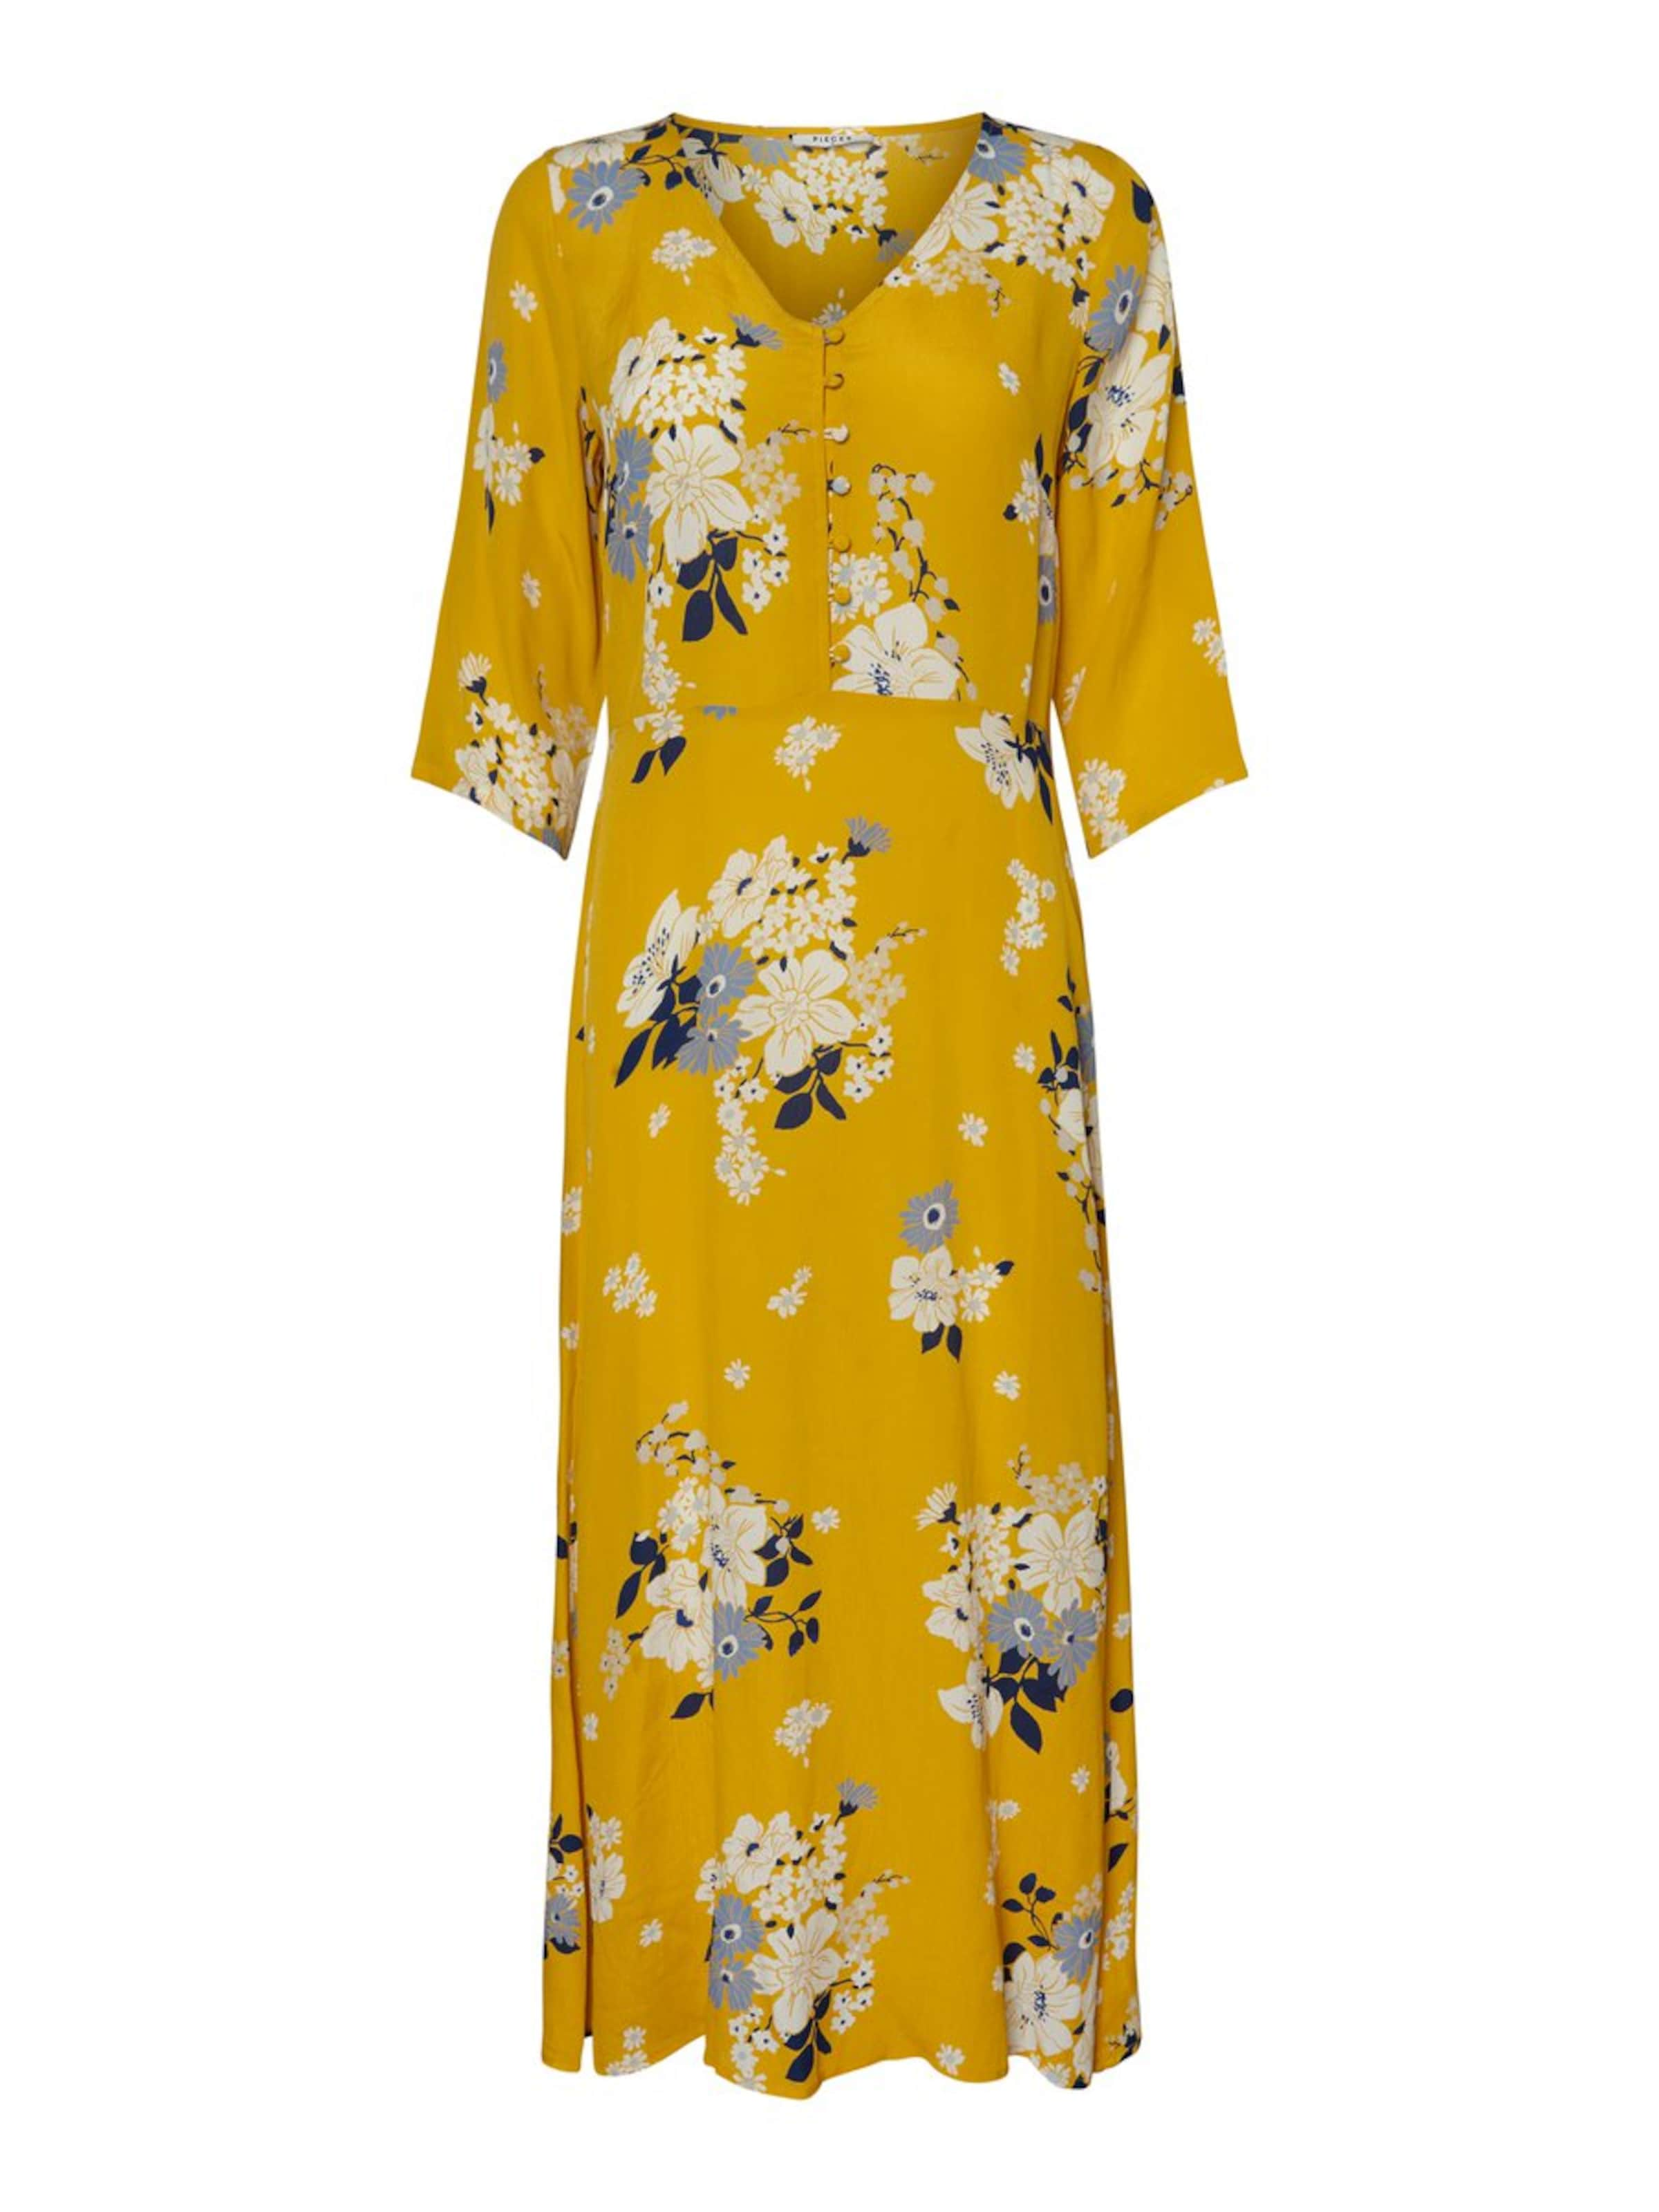 En Robe Jaune Pieces Pieces Jaune En En Robe Robe Jaune Pieces Robe Pieces YDIEH2W9